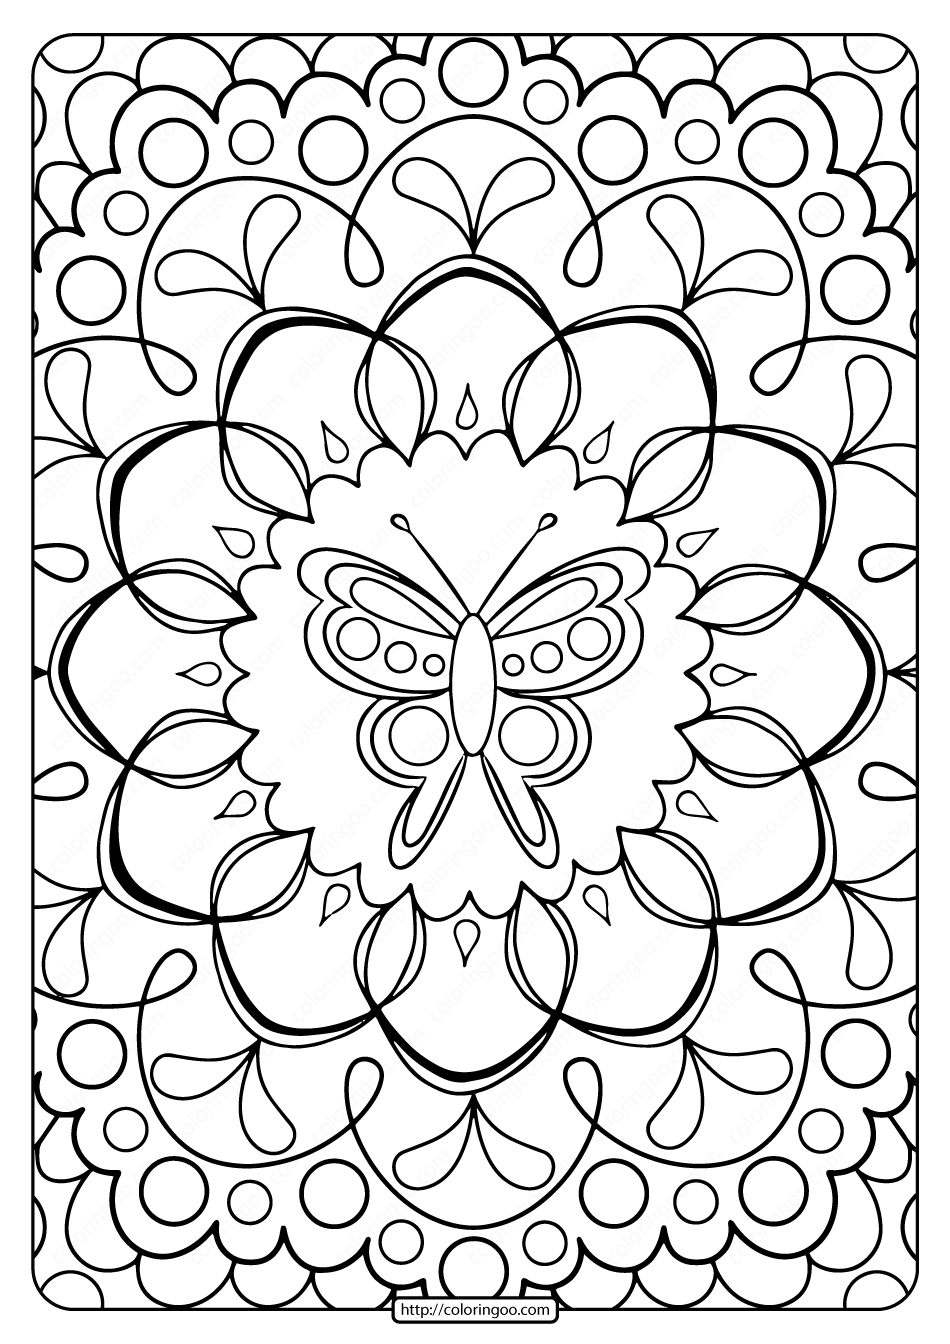 free printable color sheets free printable leprechaun coloring pages for kids sheets printable color free